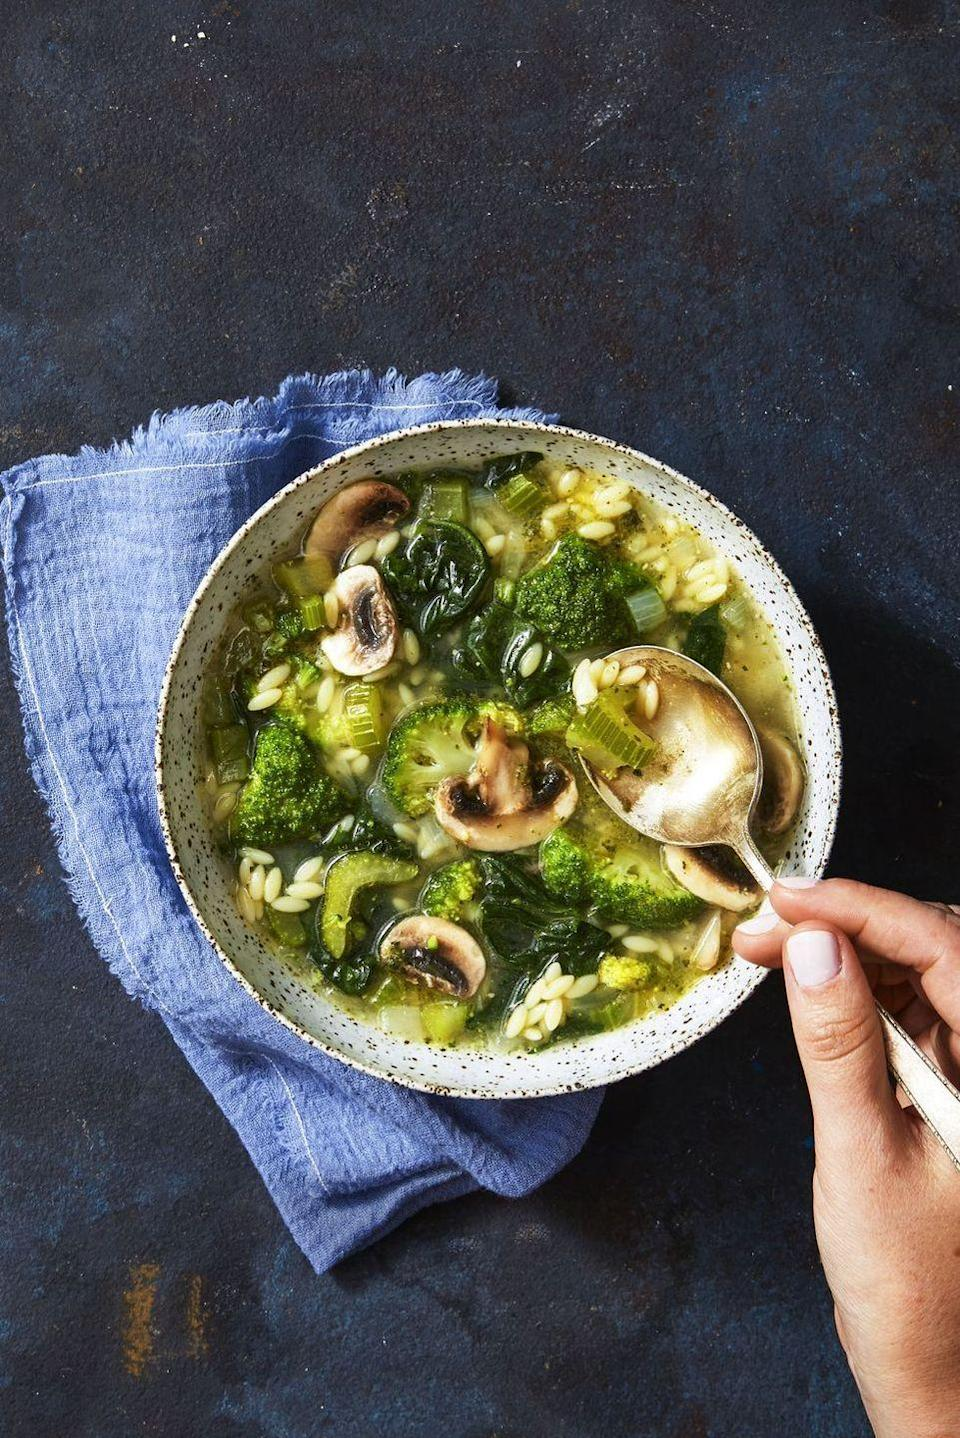 """<p>Packed with plenty of good-for-you veggies, this soup turns a traditional comfort food into a healthy meal. Plus, the recipe yields six servings, so you're basically set for the week.</p><p><em><a href=""""https://www.goodhousekeeping.com/food-recipes/a40384/supergreen-mushroom-orzo-soup-recipe/"""" rel=""""nofollow noopener"""" target=""""_blank"""" data-ylk=""""slk:Get the recipe for the Supergreen Mushroom & Orzo Soup »"""" class=""""link rapid-noclick-resp"""">Get the recipe for the Supergreen Mushroom & Orzo Soup »</a></em></p>"""